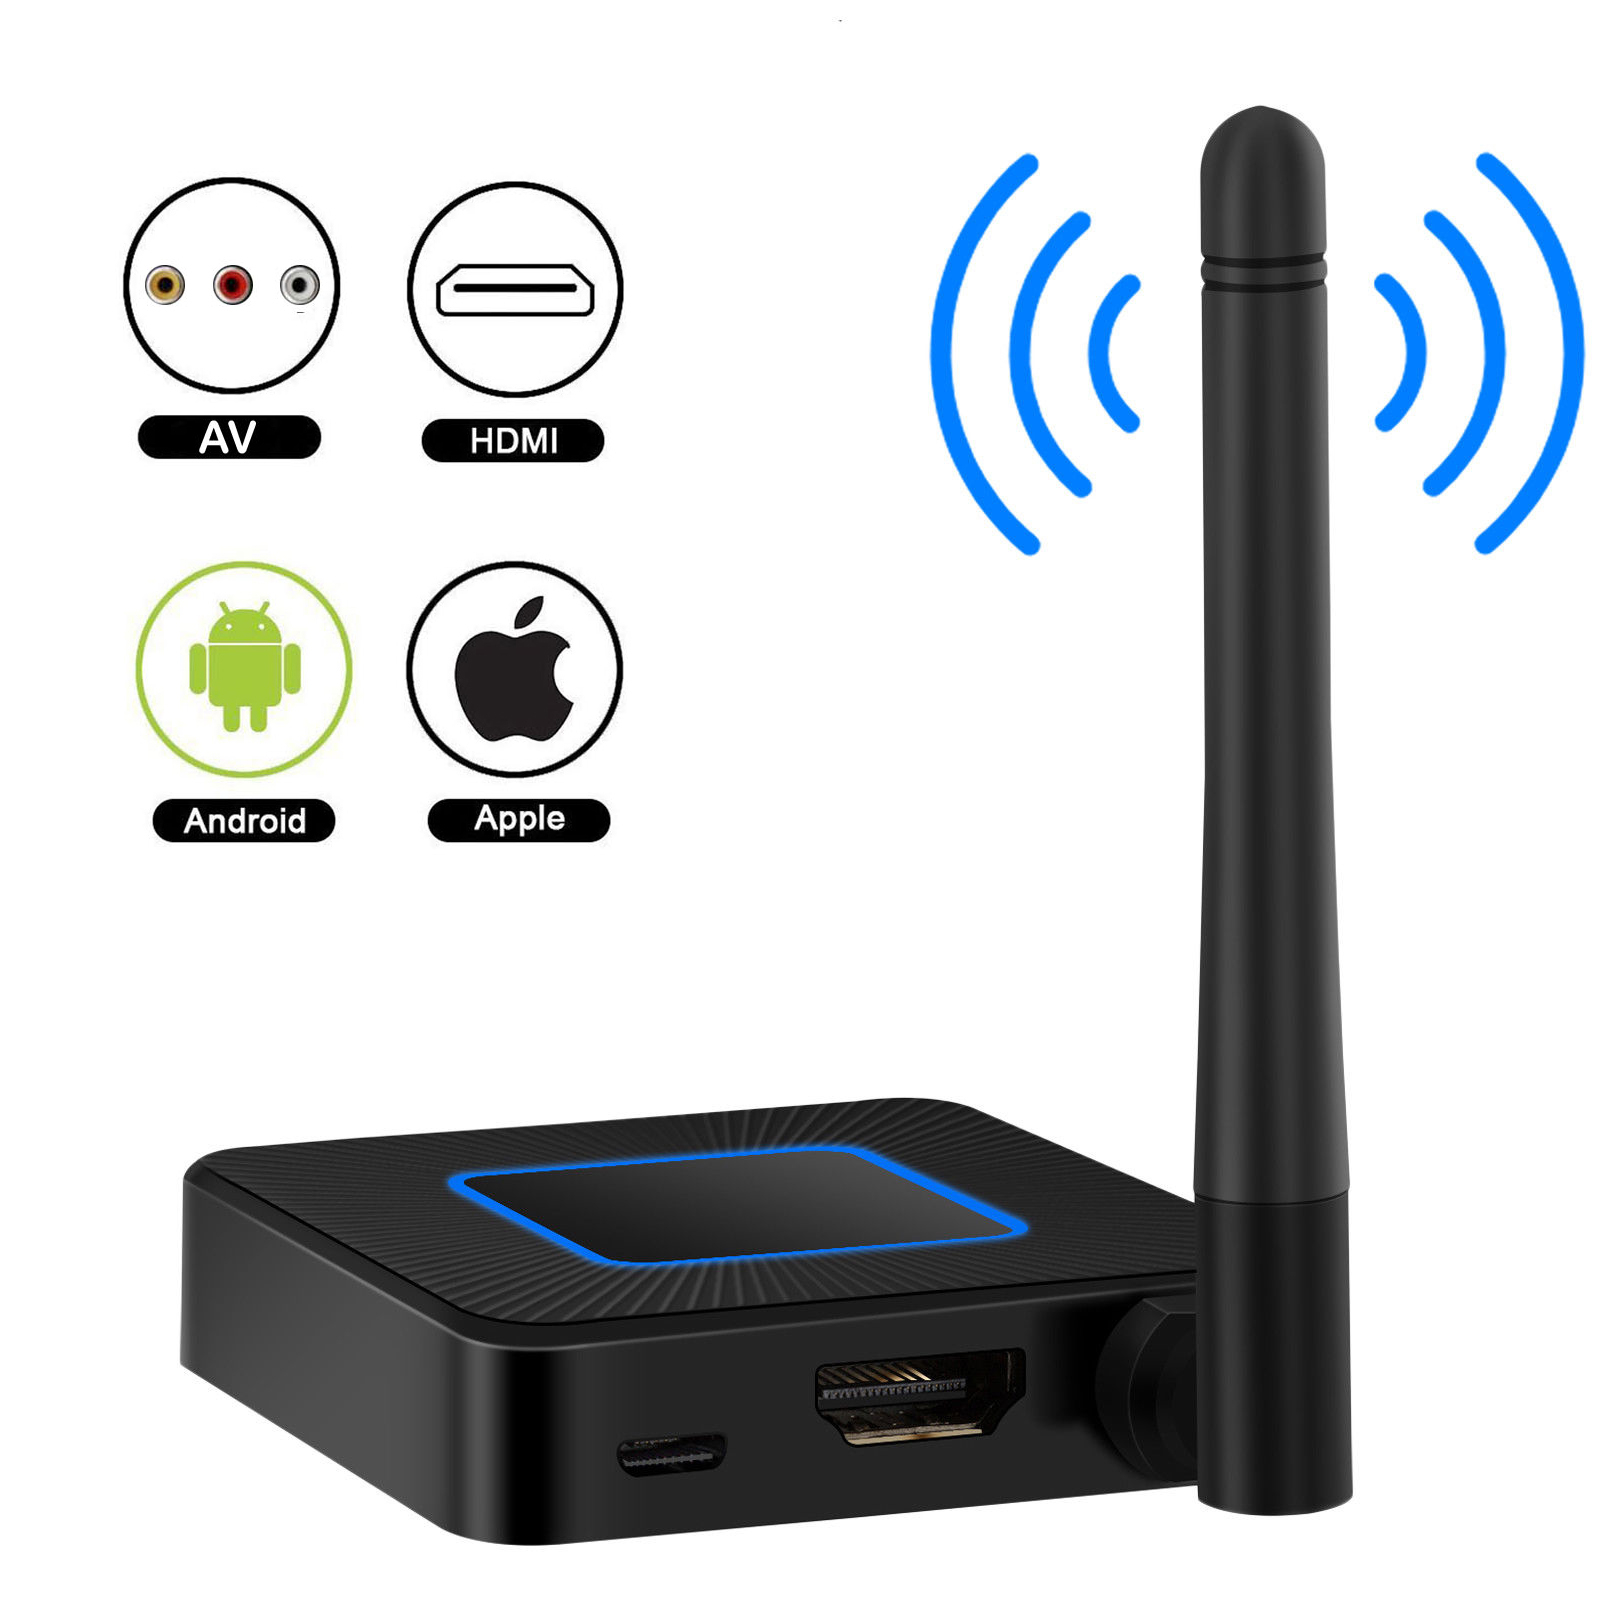 Beliebte Marke Q4 2,4g 5,8g Airplay Chrome Dongle Miracast Display Streamer Adapter Tv Stick Wireless Hdmi Mirroring Wifi 1080 P Dlna Av Out